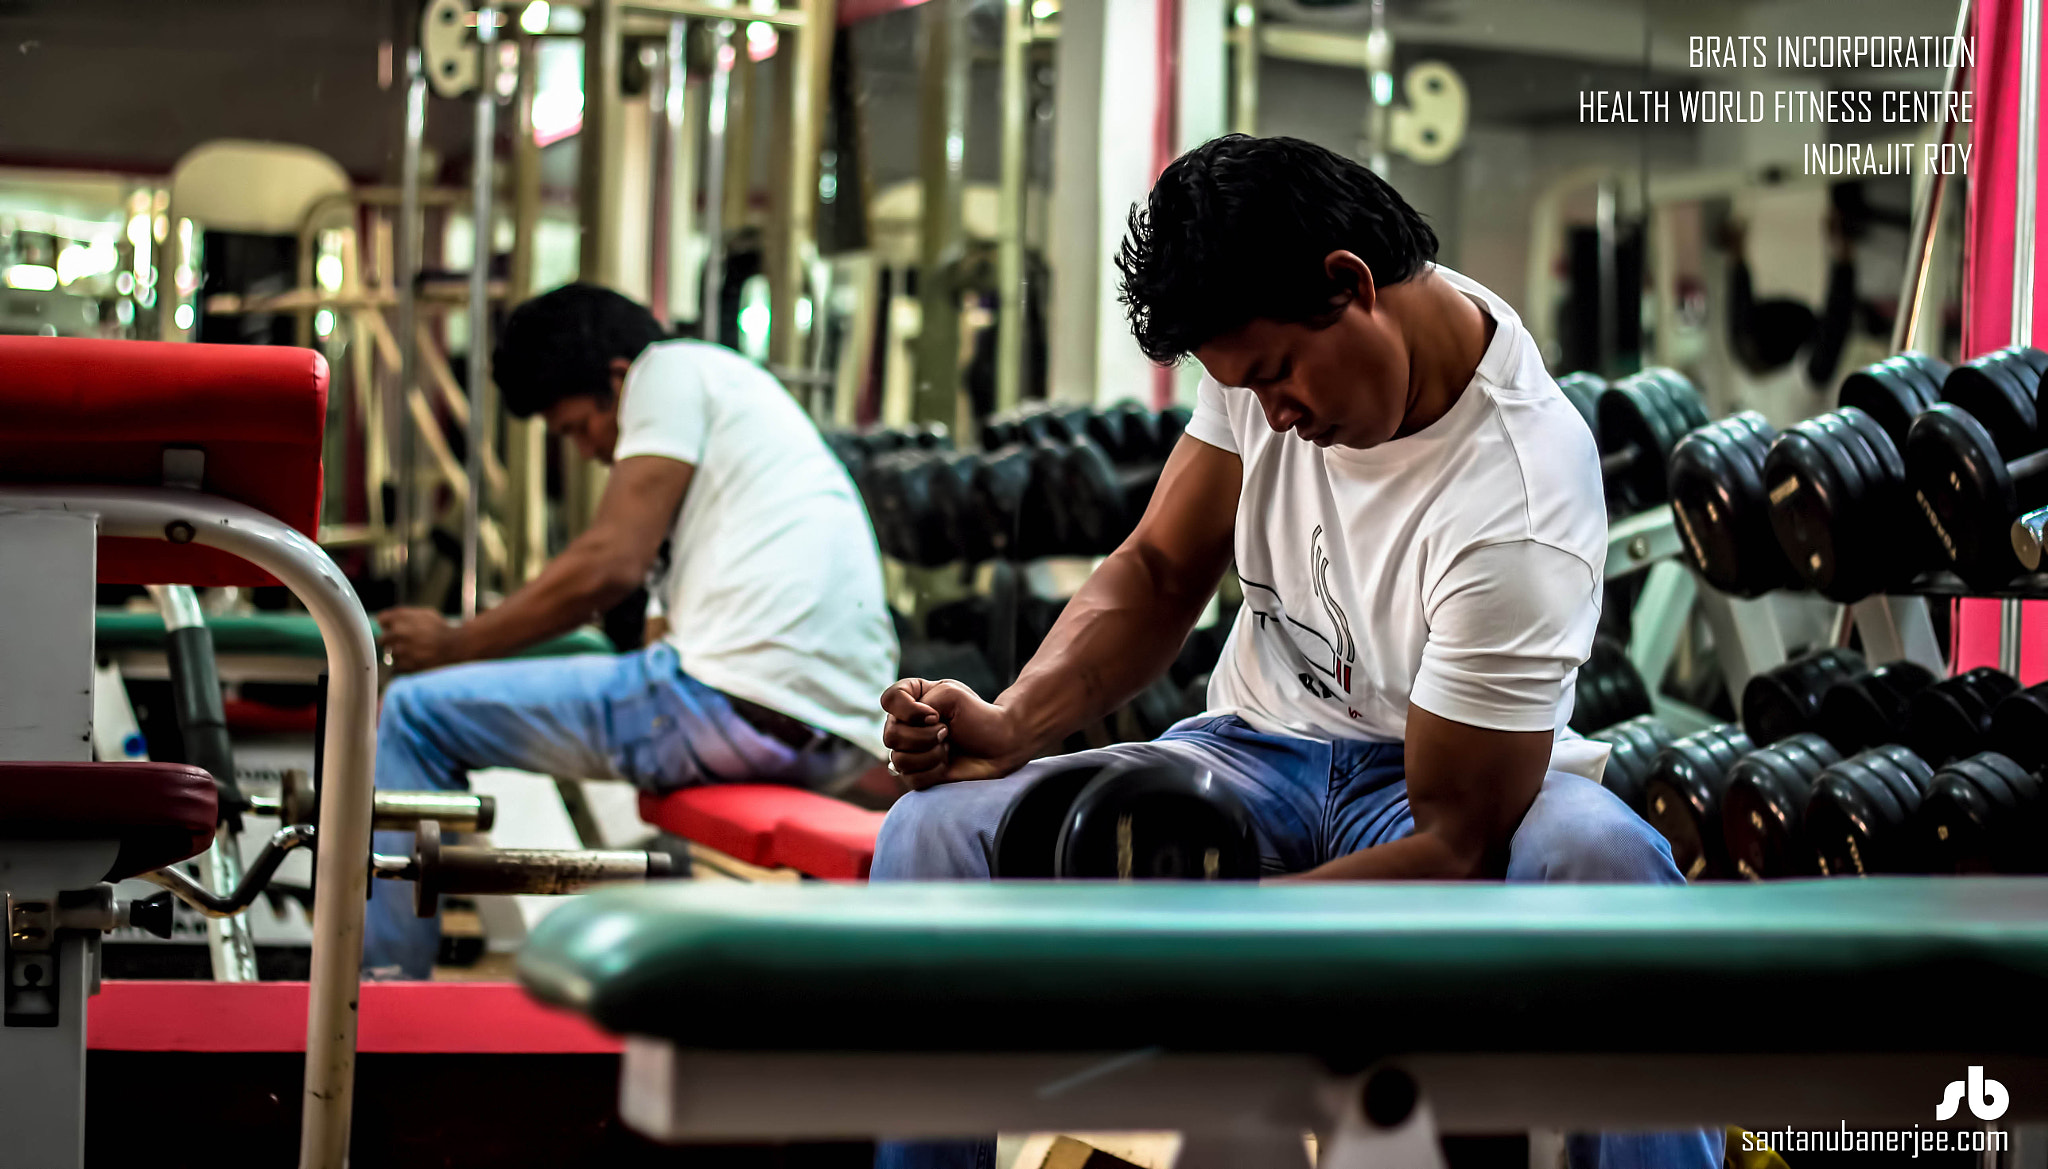 Photograph Workout @ Gym -- II by Santanu Banerjee on 500px